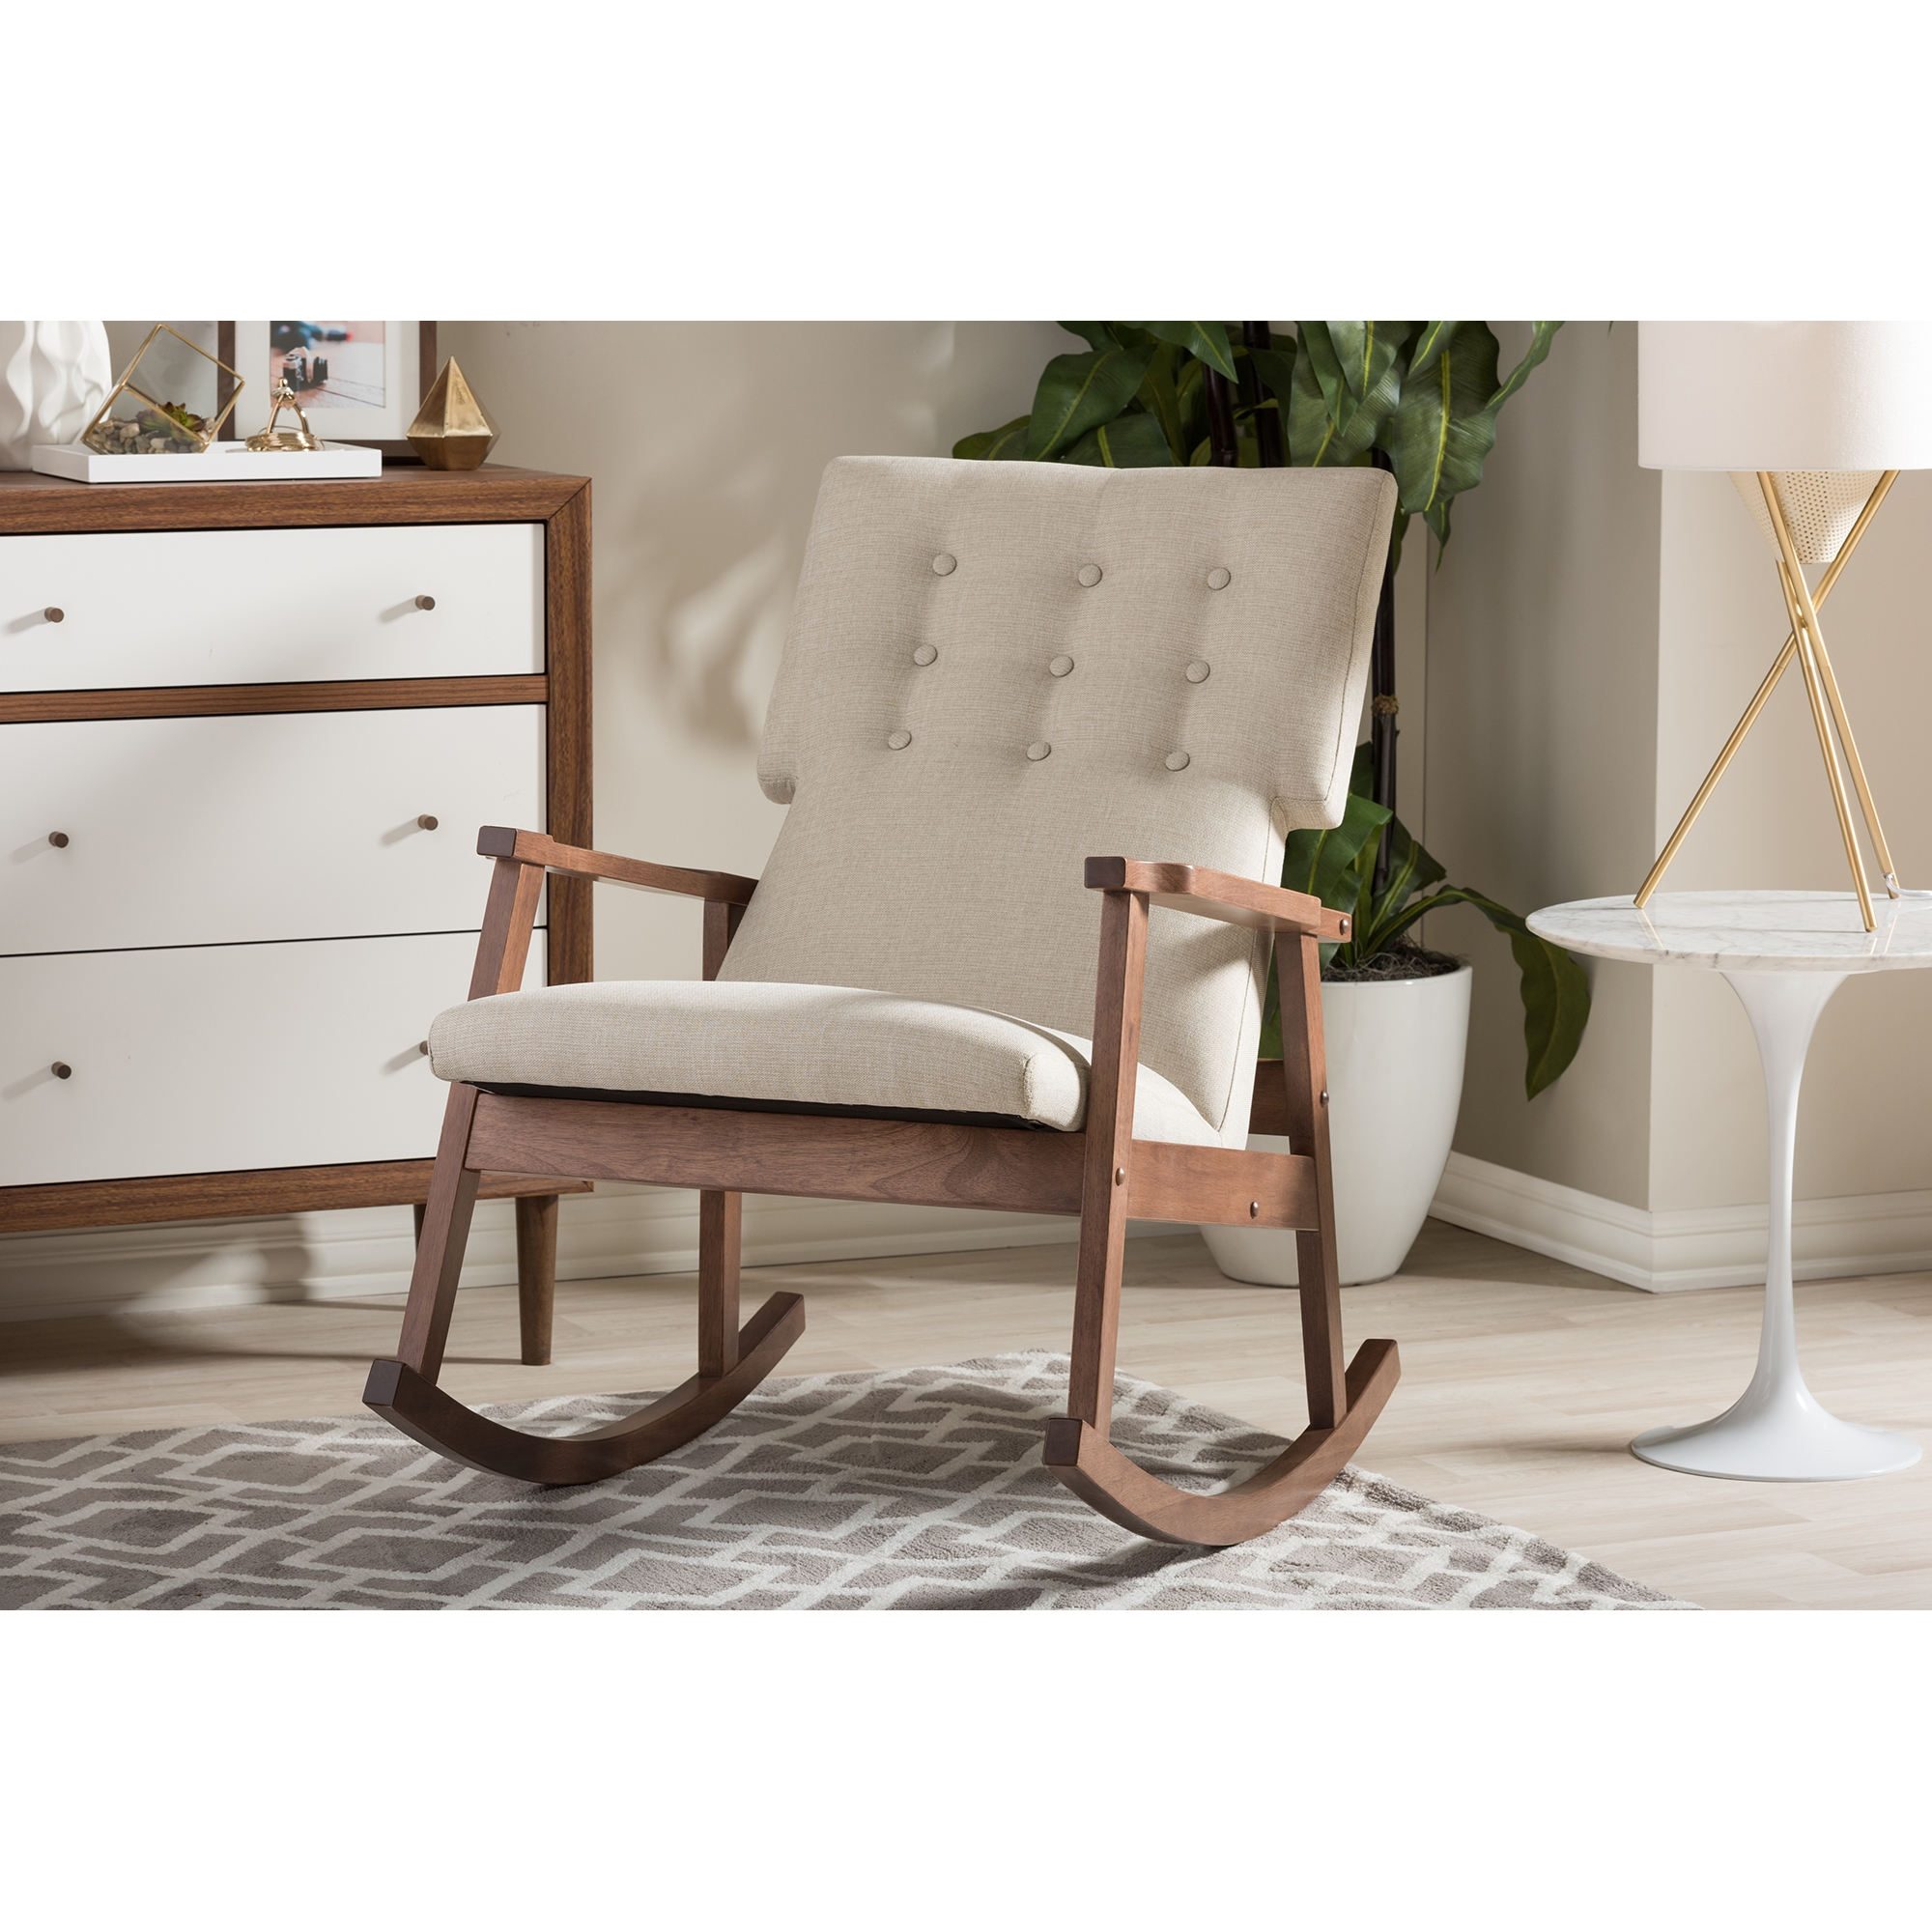 Exceptional ... Baxton Studio Agatha Mid Century Modern Light Beige Fabric Upholstered  Button Tufted Rocking Chair